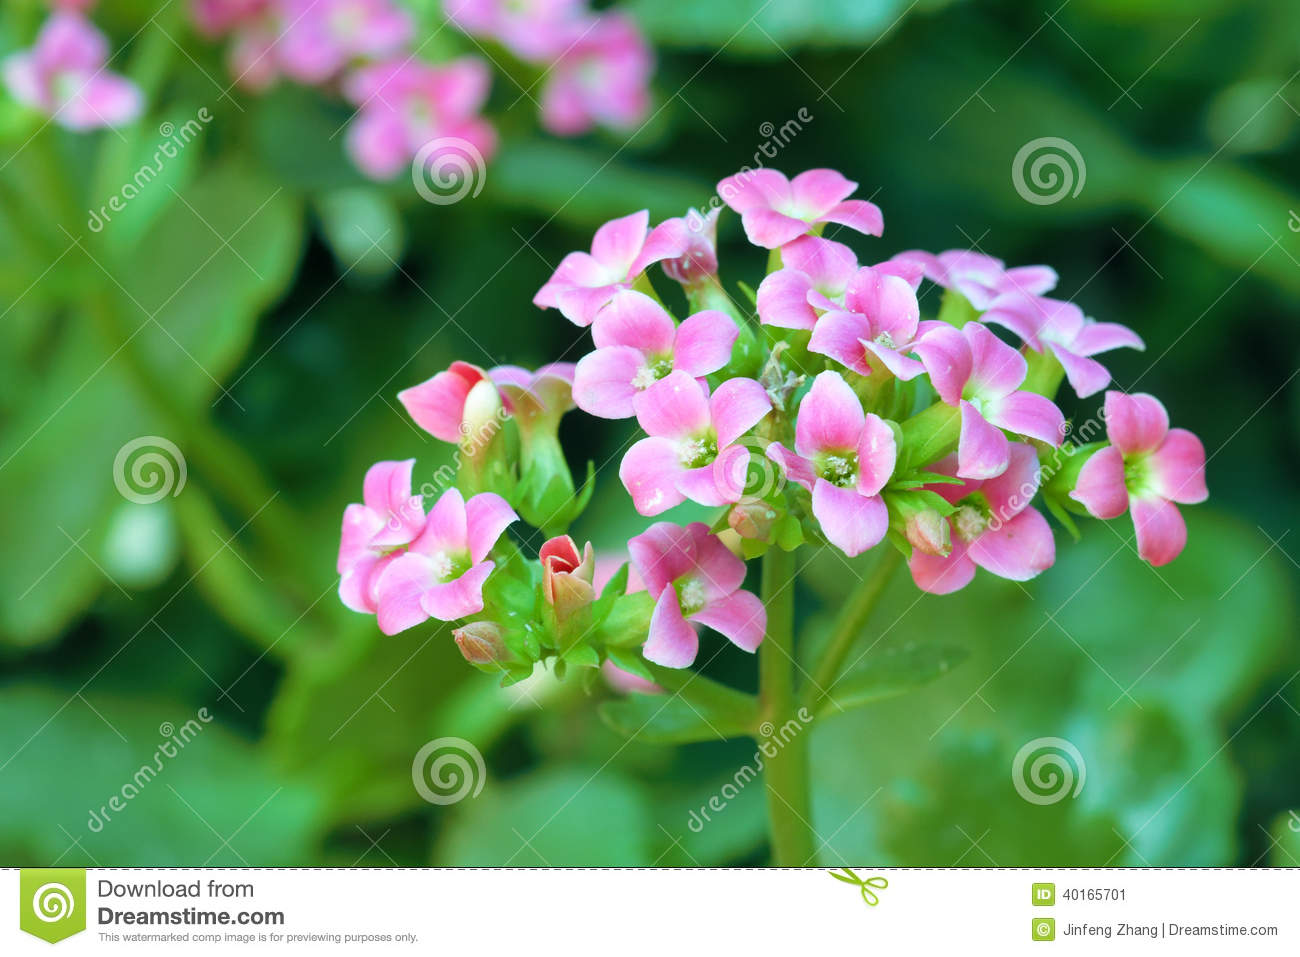 Jonquil Flower Facts images